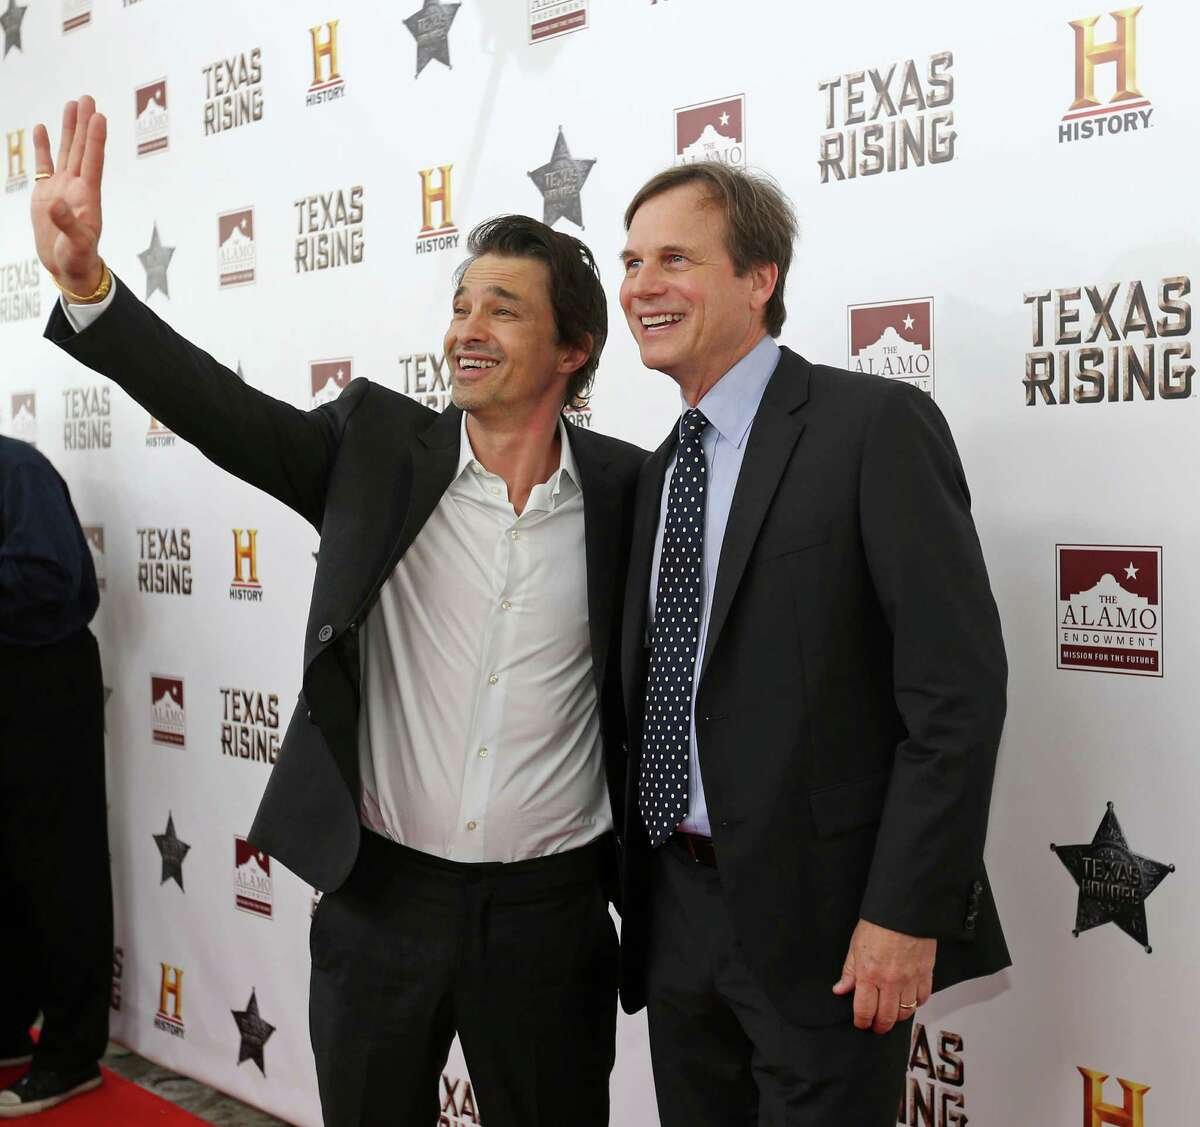 'Texas Rising' cast members Olivier Martinez (left), and Bill Paxton pose on the red carpet during the Texas Honors event Monday May 18, 2015 at the Alamo. The event served as a preview for History channel's epic series 'Texas Rising' that premieres Memorial Day Monday May 25, 2015 at 9 PM ET on History and as the launch of a fundraising campaign for the Alamo Endowment. The endowment is a nonprofit entity chaired by Texas Land Commissioner George P. Bush that raises money for the preservation and improvement of the Alamo.